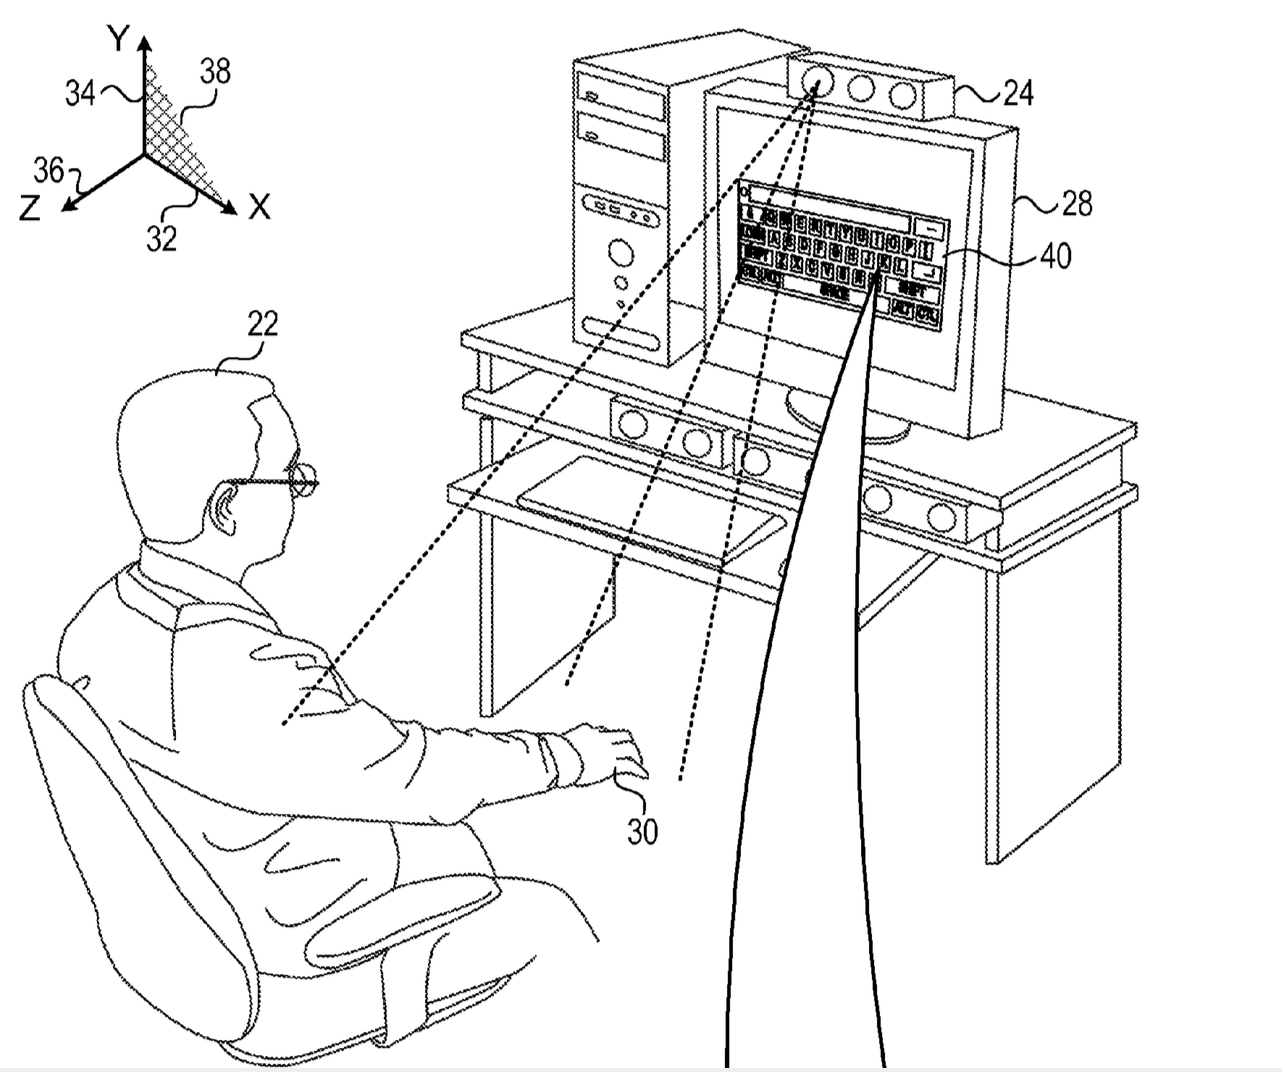 Apple granted PrimeSense patent related to 3D virtual